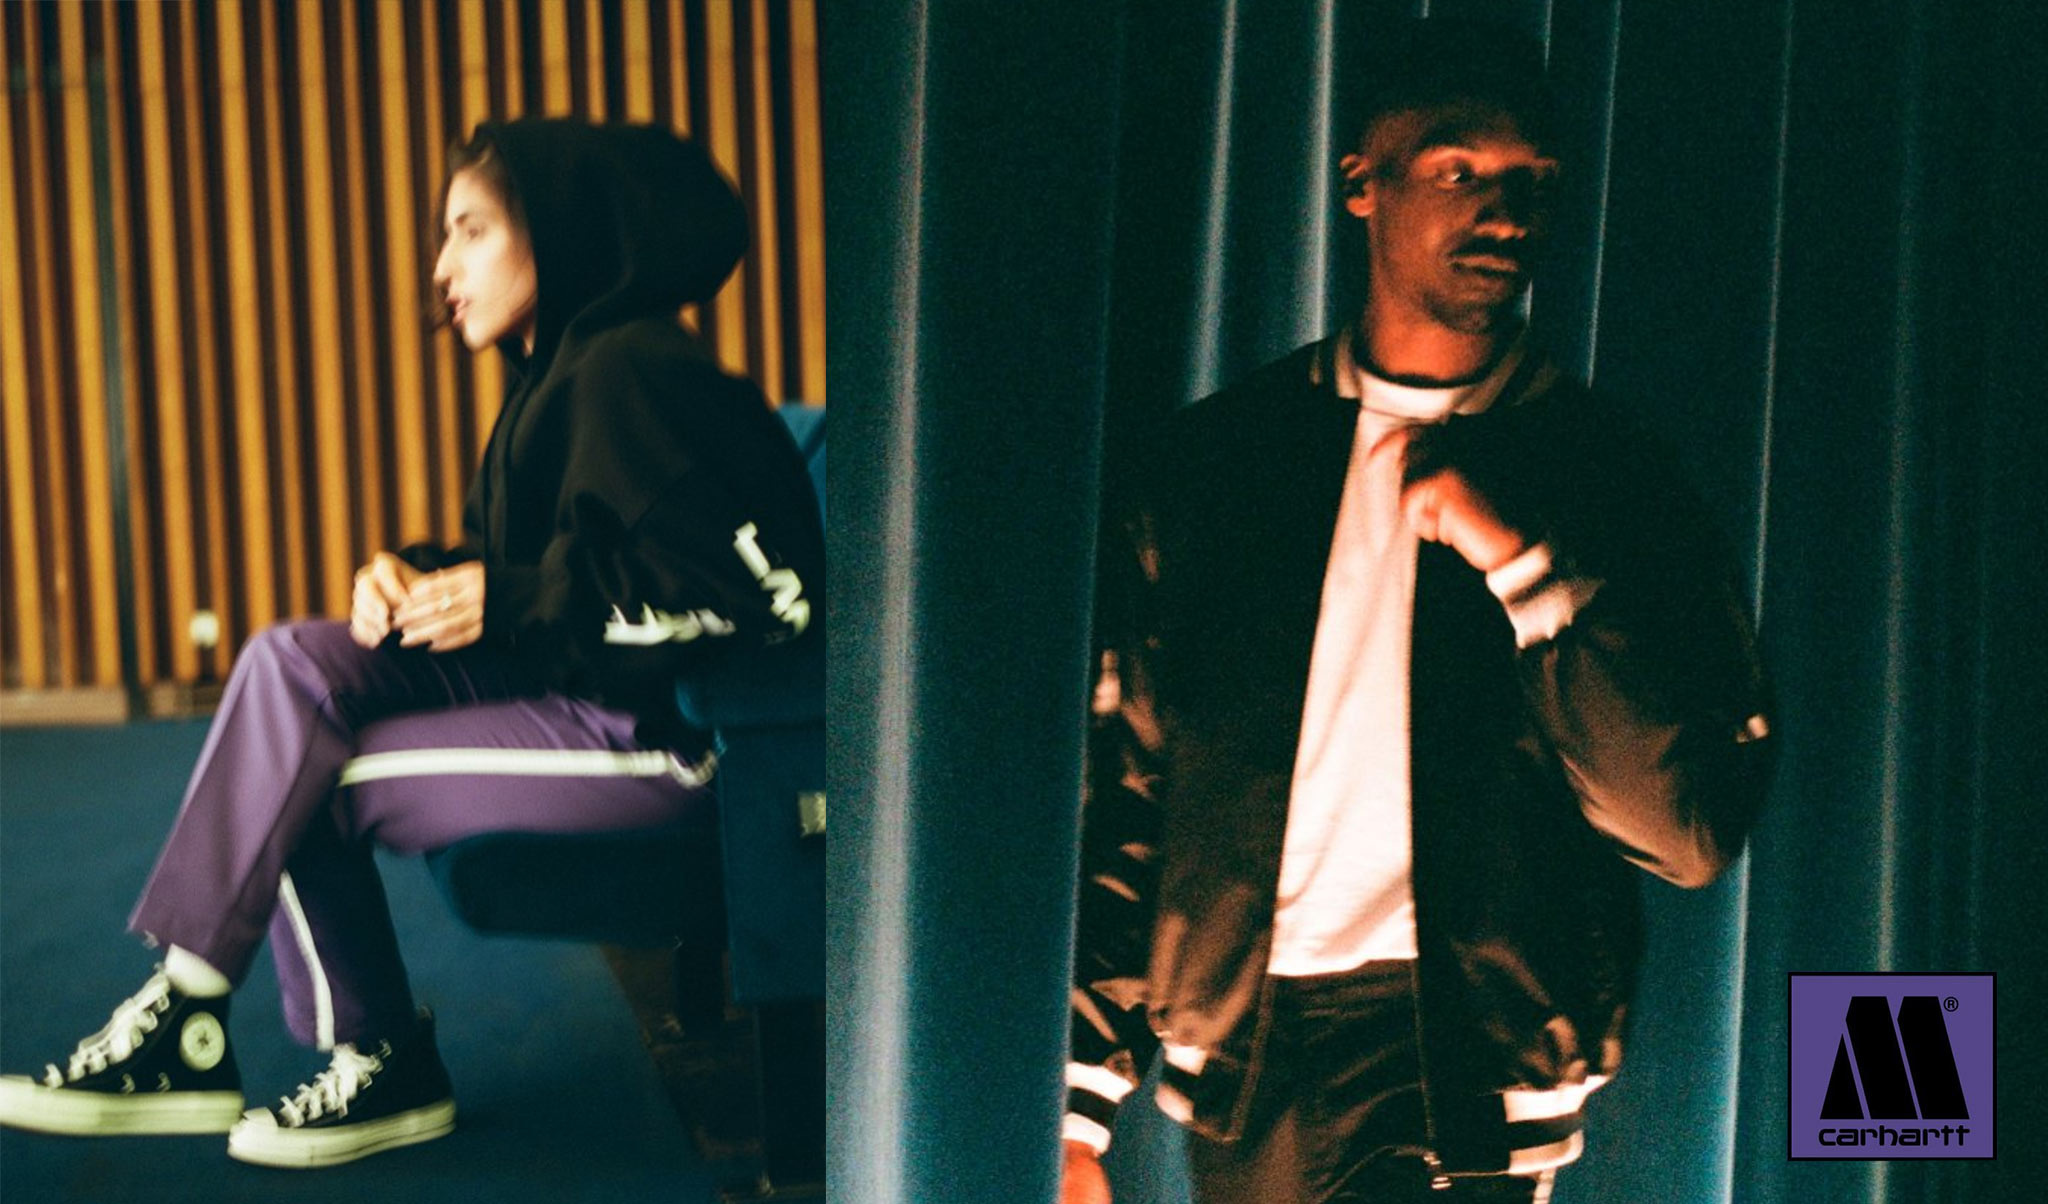 Carhartt WIP x Motown capsule collection